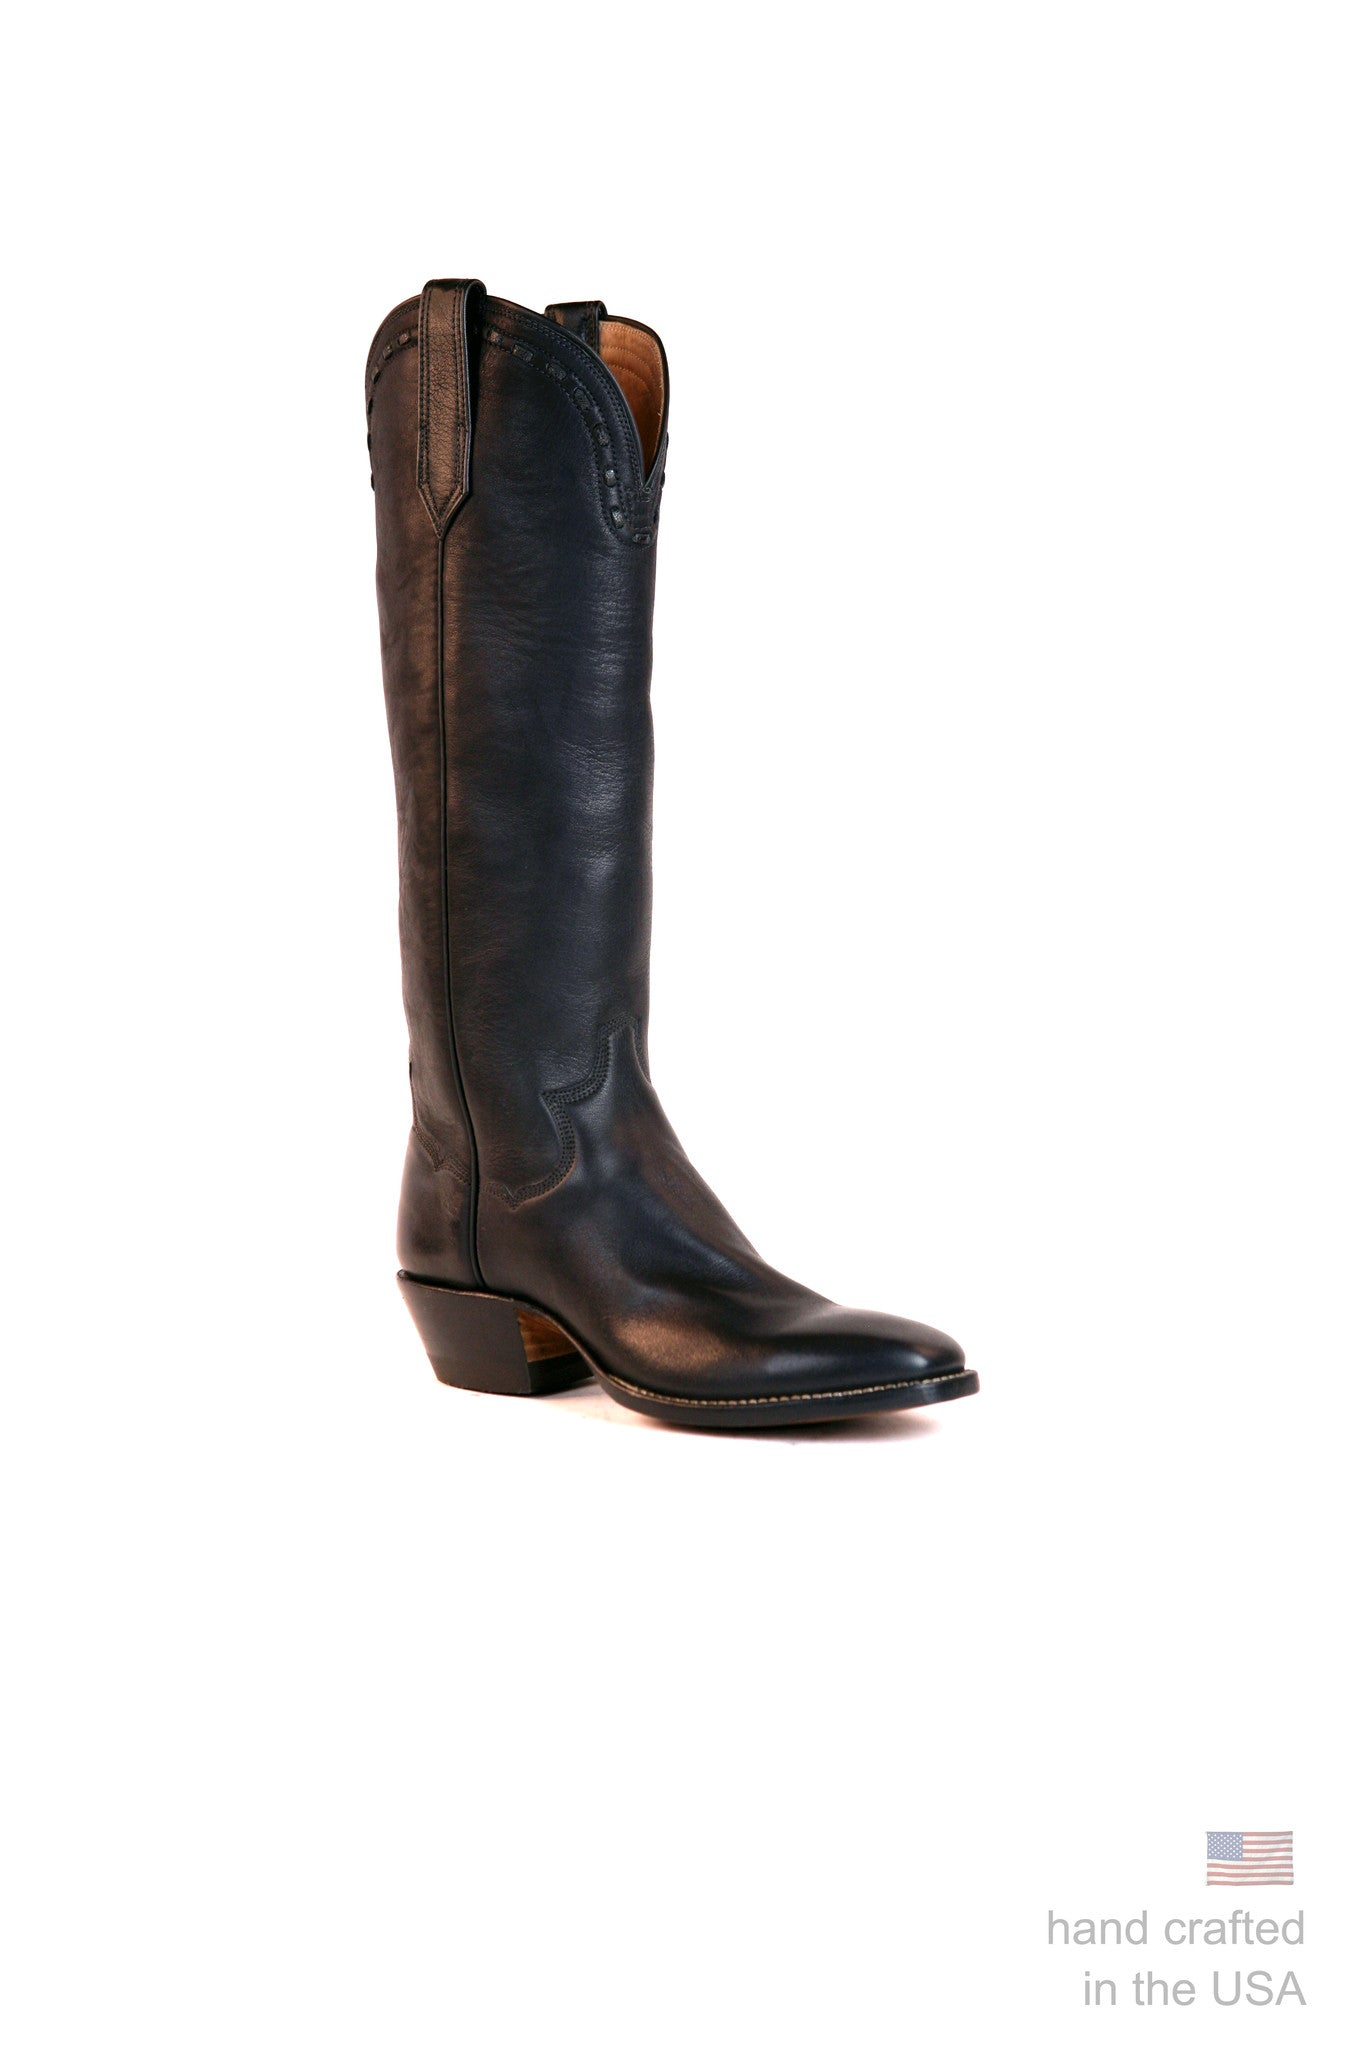 Singles: Boot 0075: Size 5